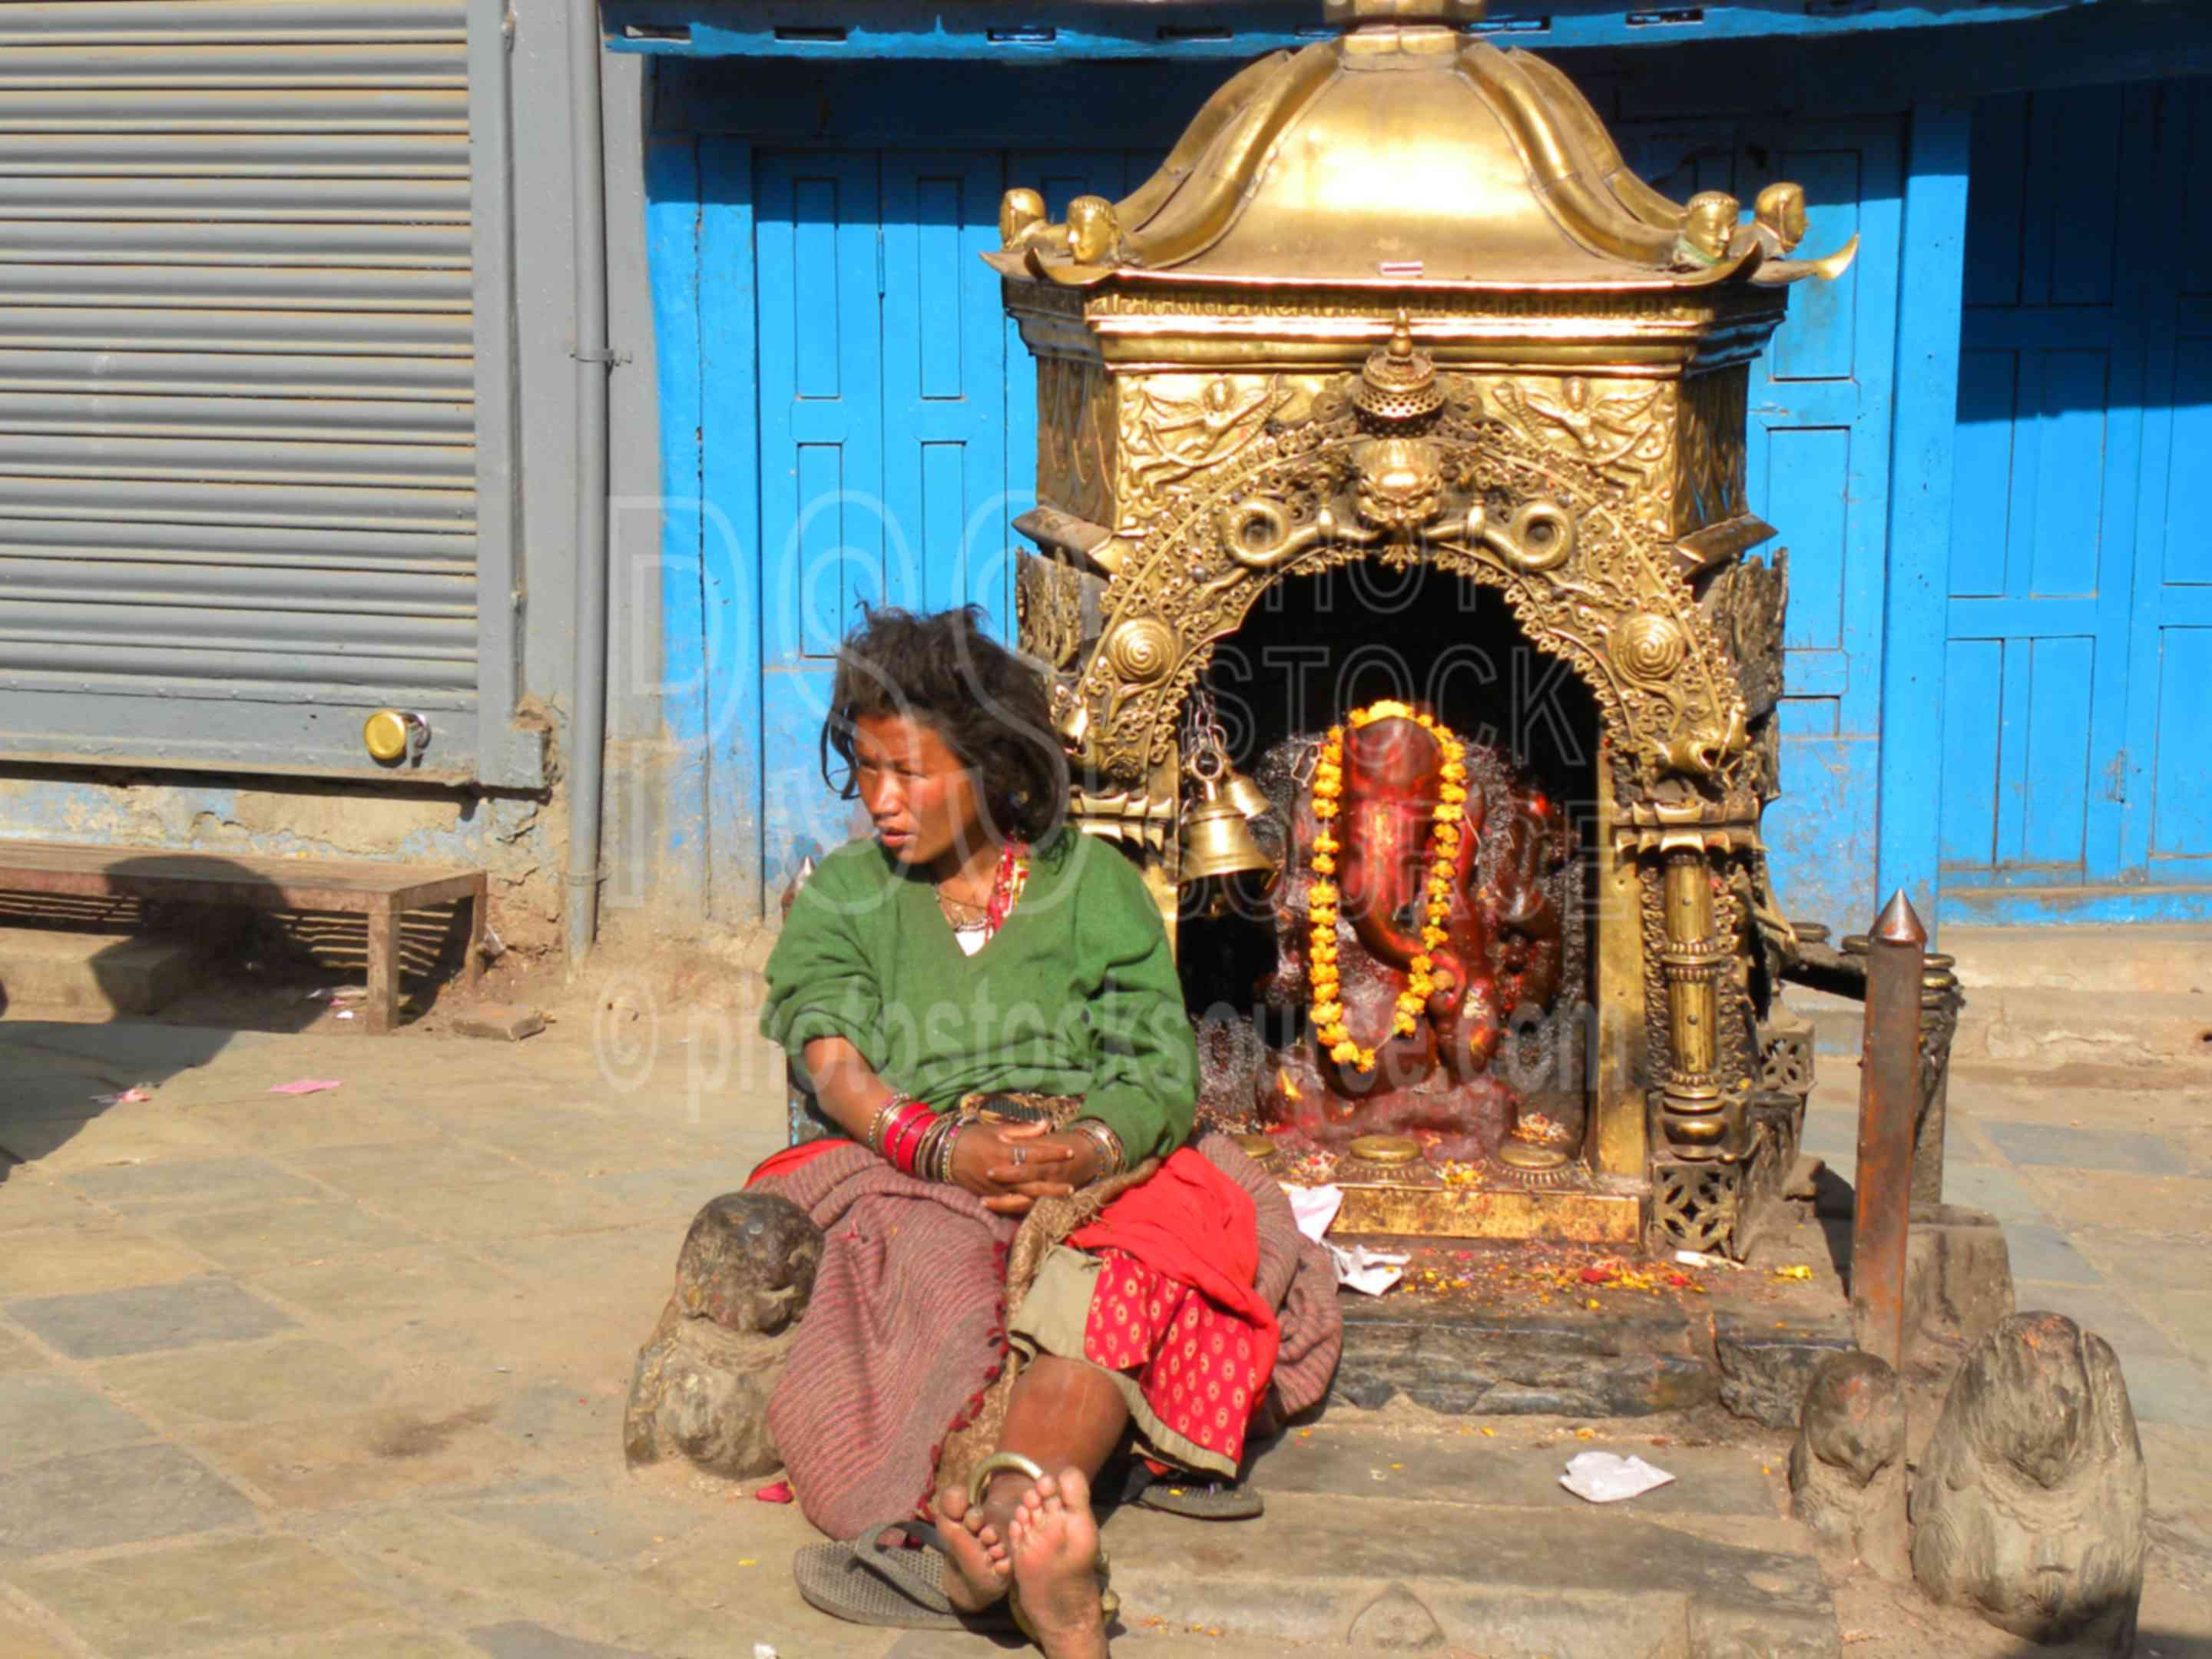 Woman by Shiva Temple,street,people,woman